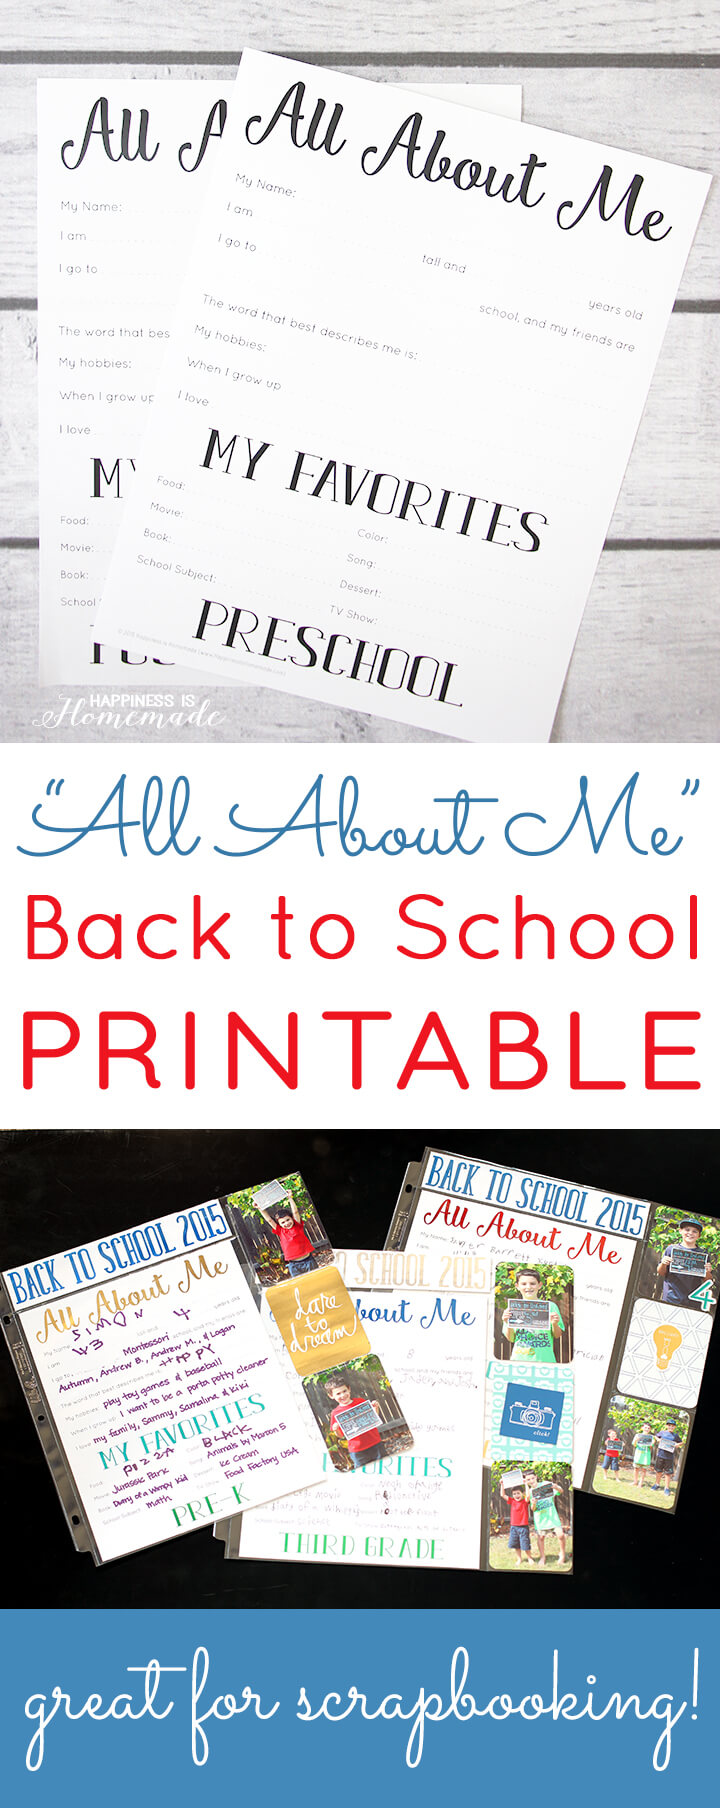 All About Me Back to School Printables - Great for Scrapbooks and Memory Keeping